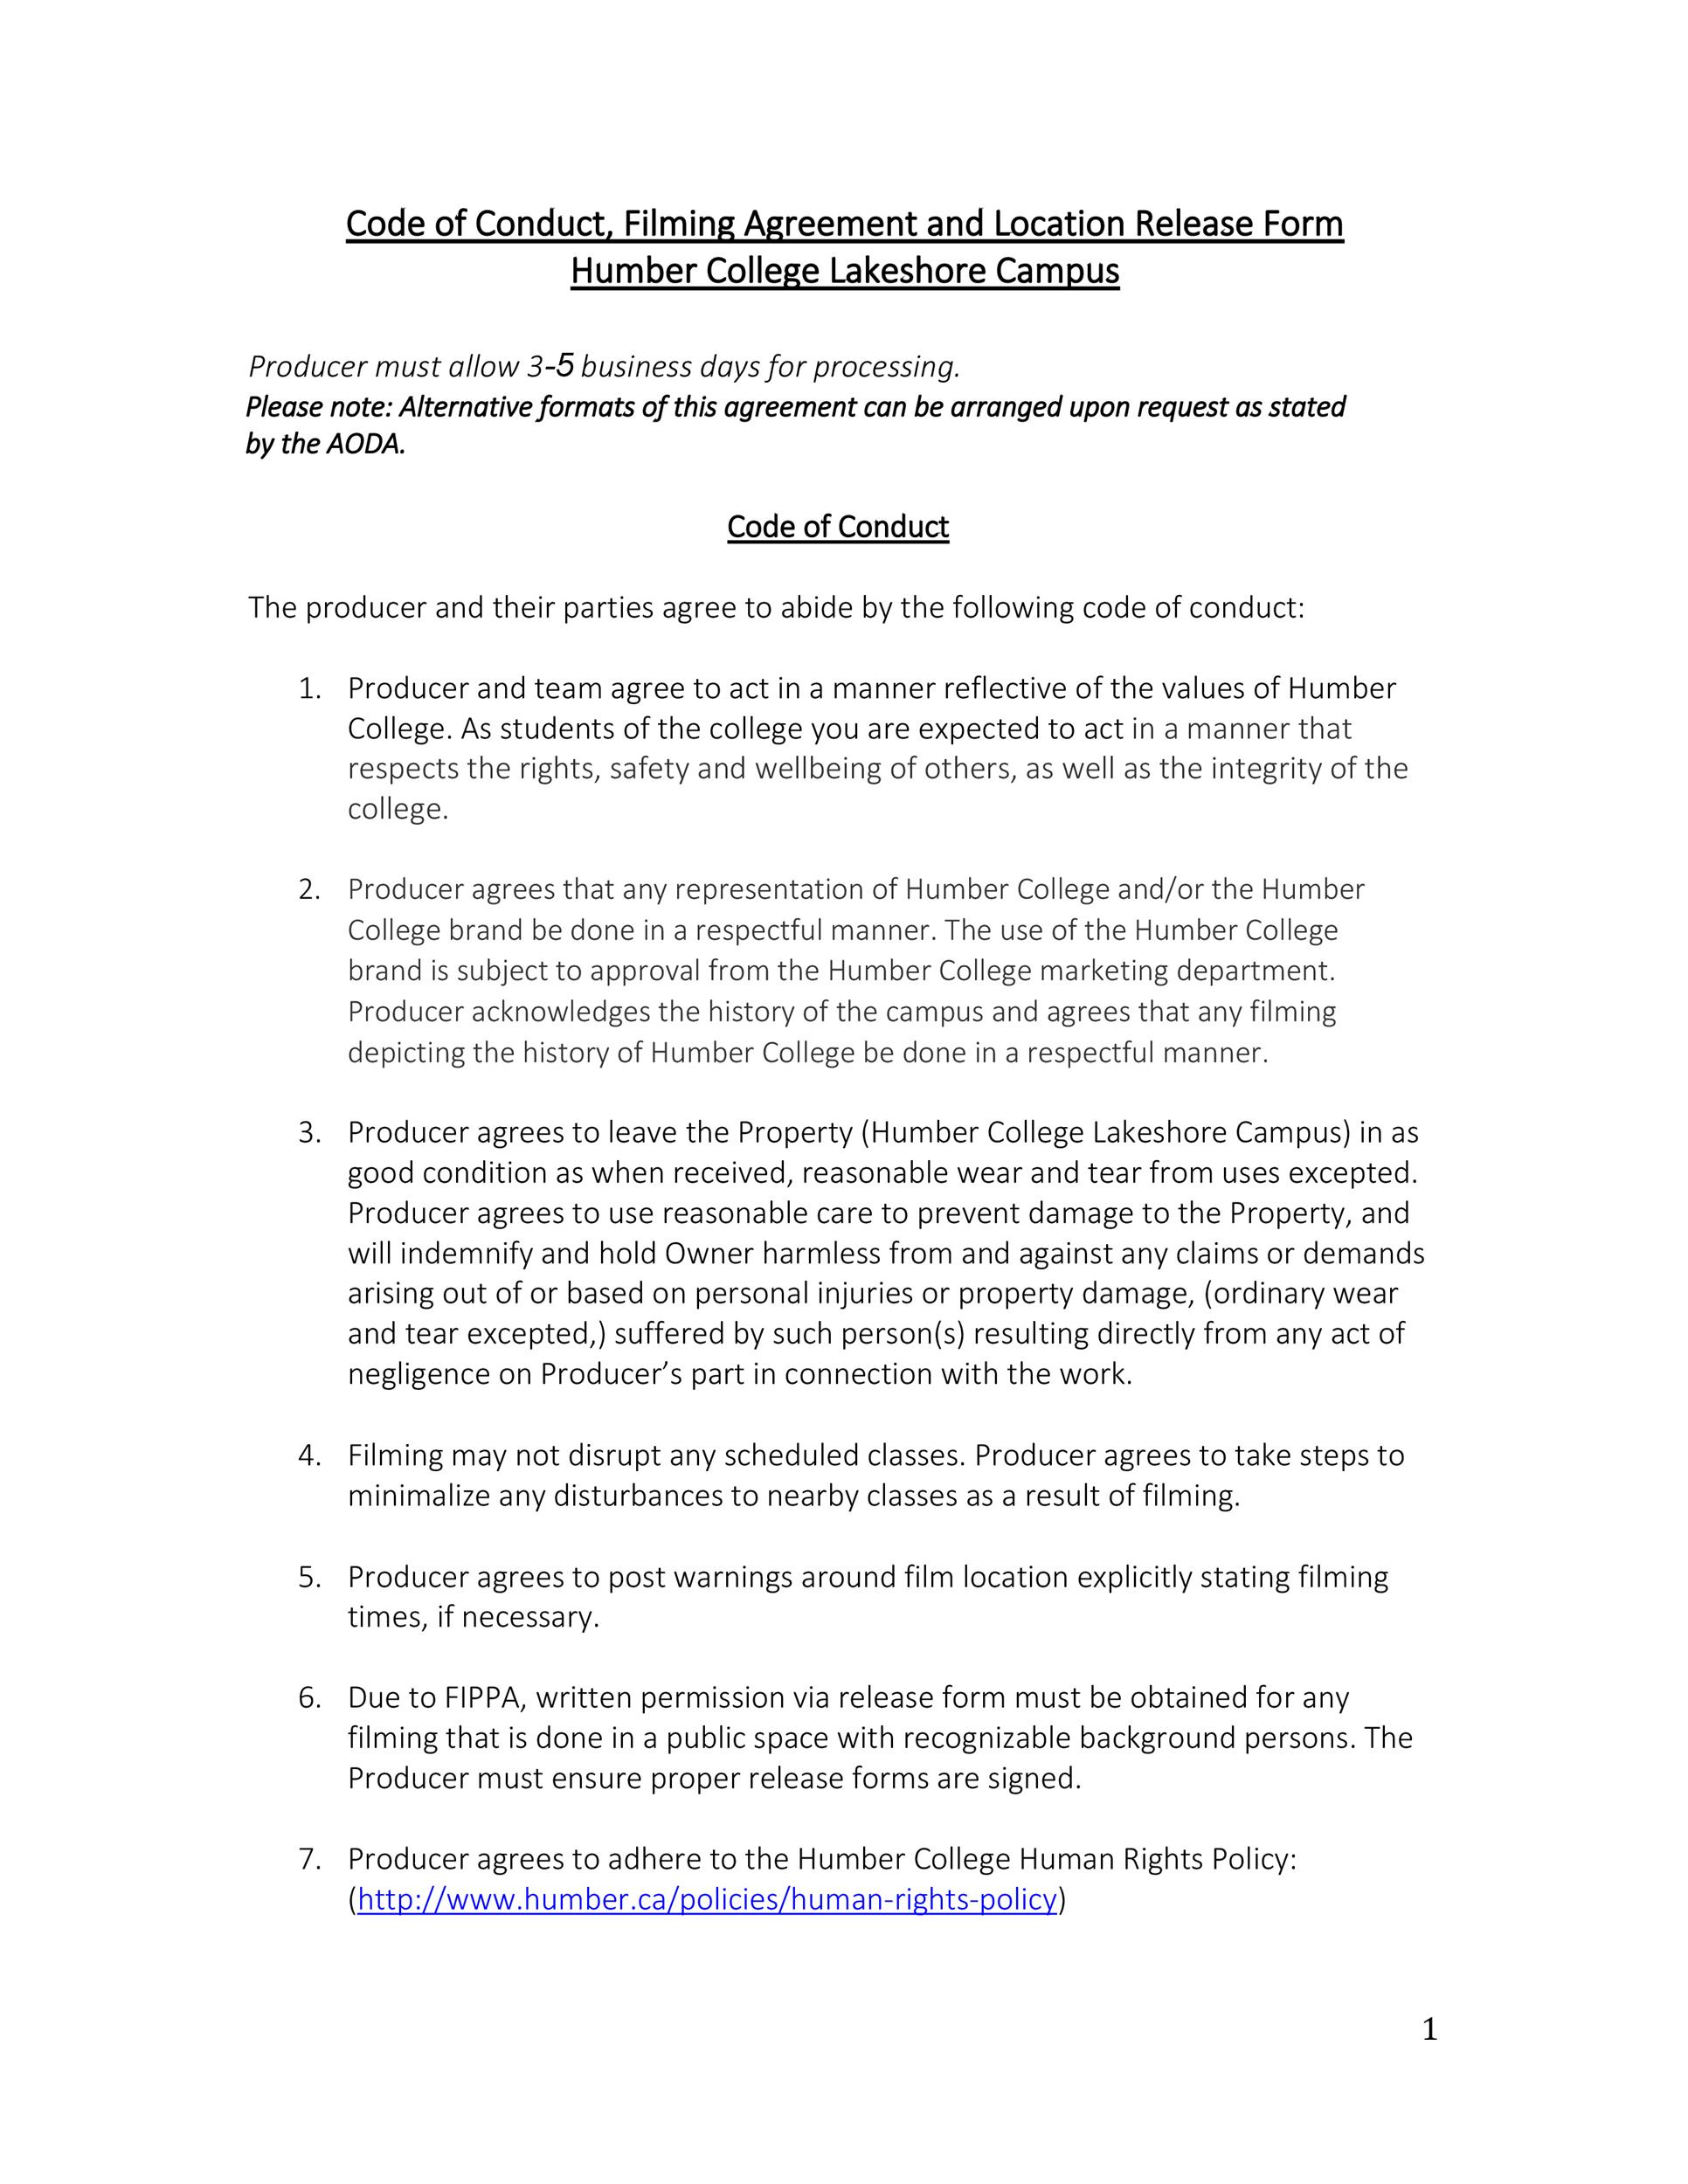 50 FREE Location Release Forms for Film / Documentary / Video